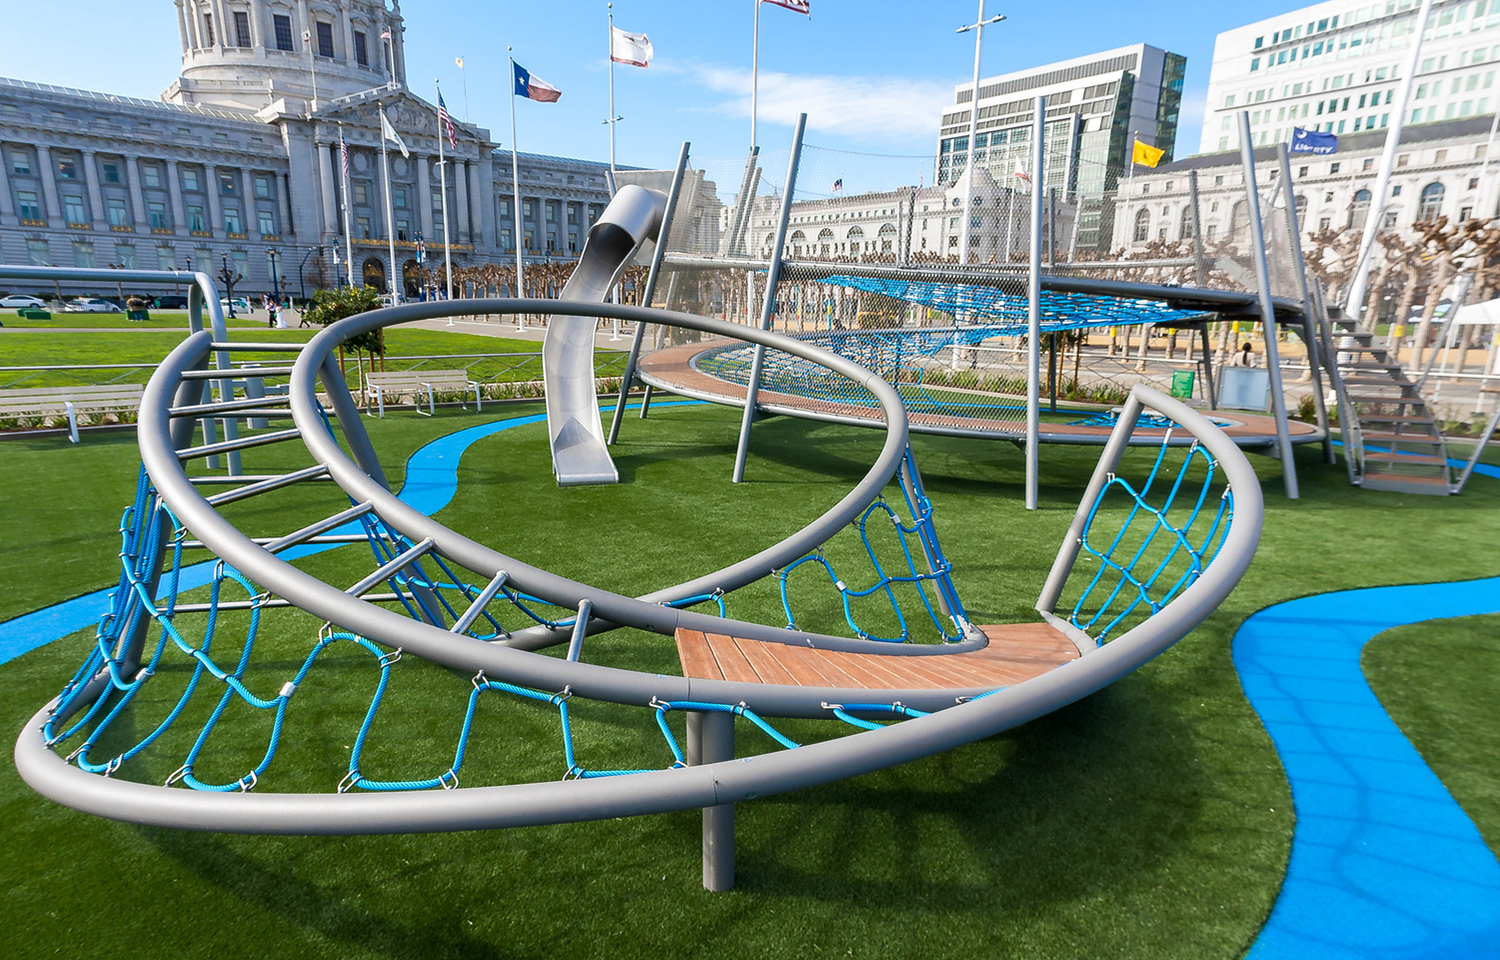 Helen Diller Civic Center Playgrounds, Сан-Франциско, США, Endrestudio